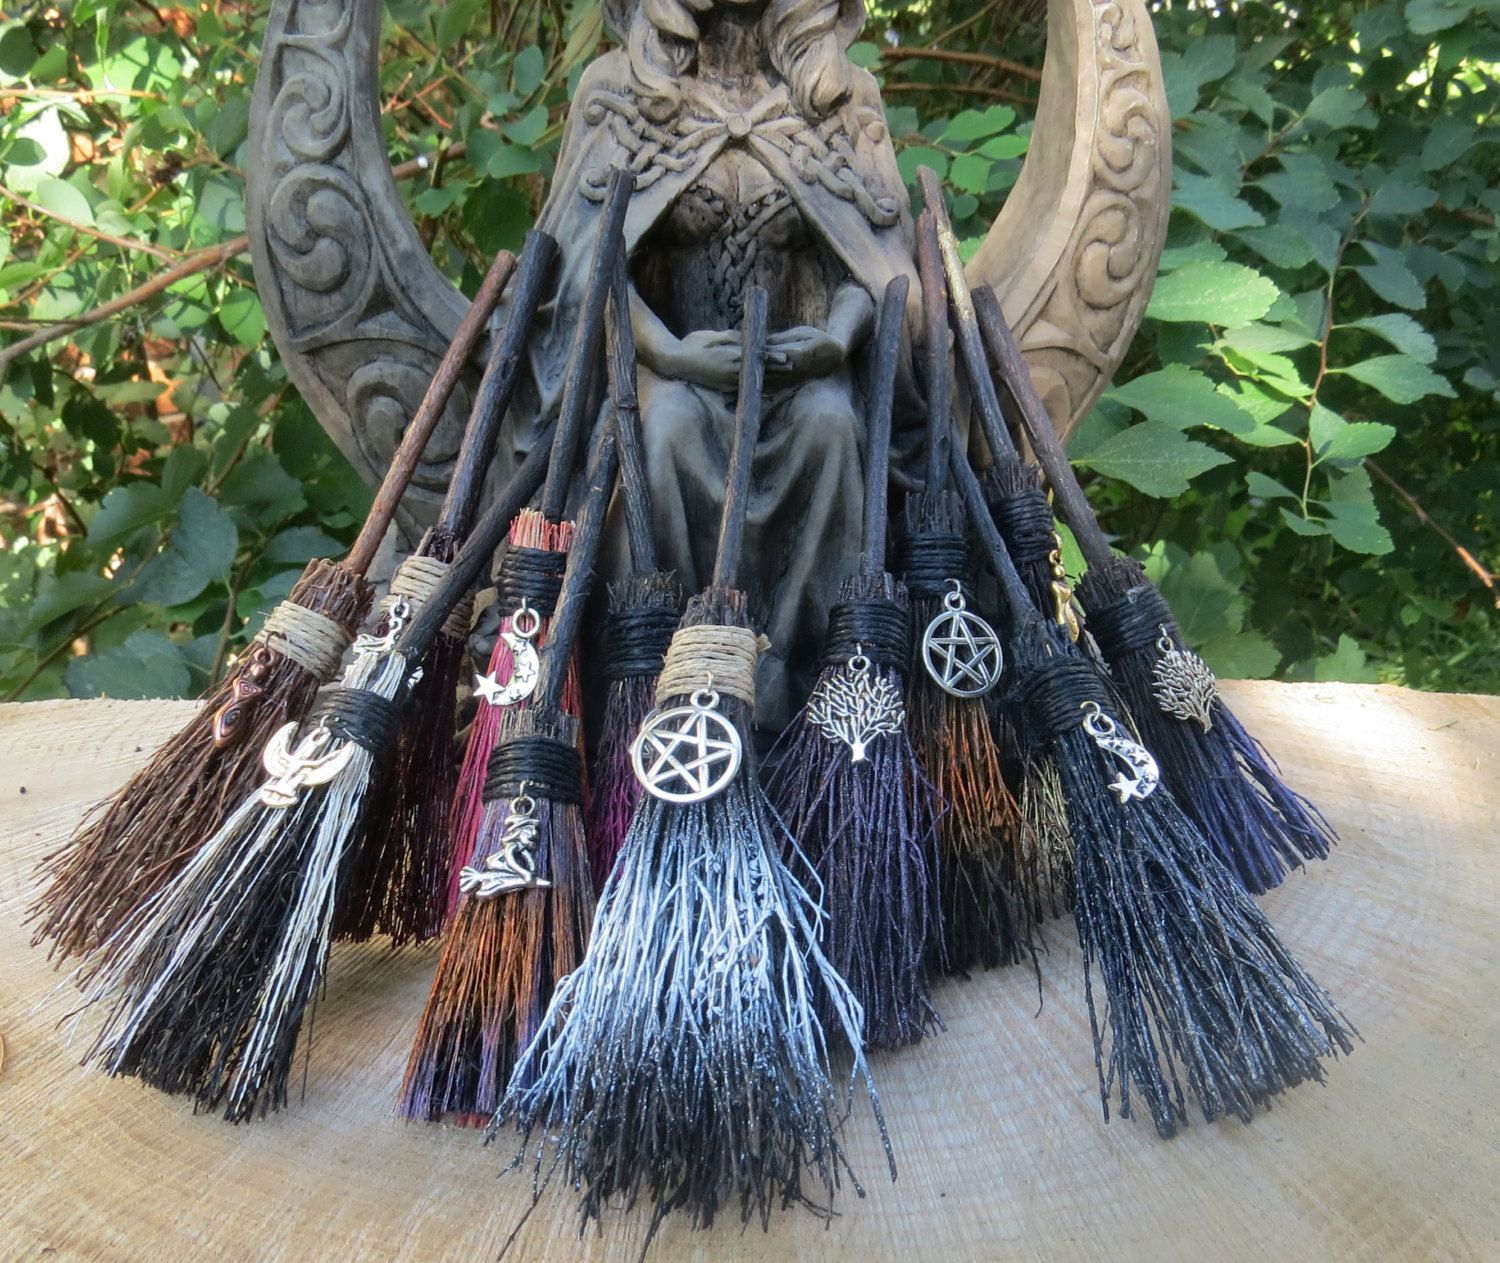 Wiccan Wedding Altar: Small Witch's Altar Broom, Witch's Car Travel Charm